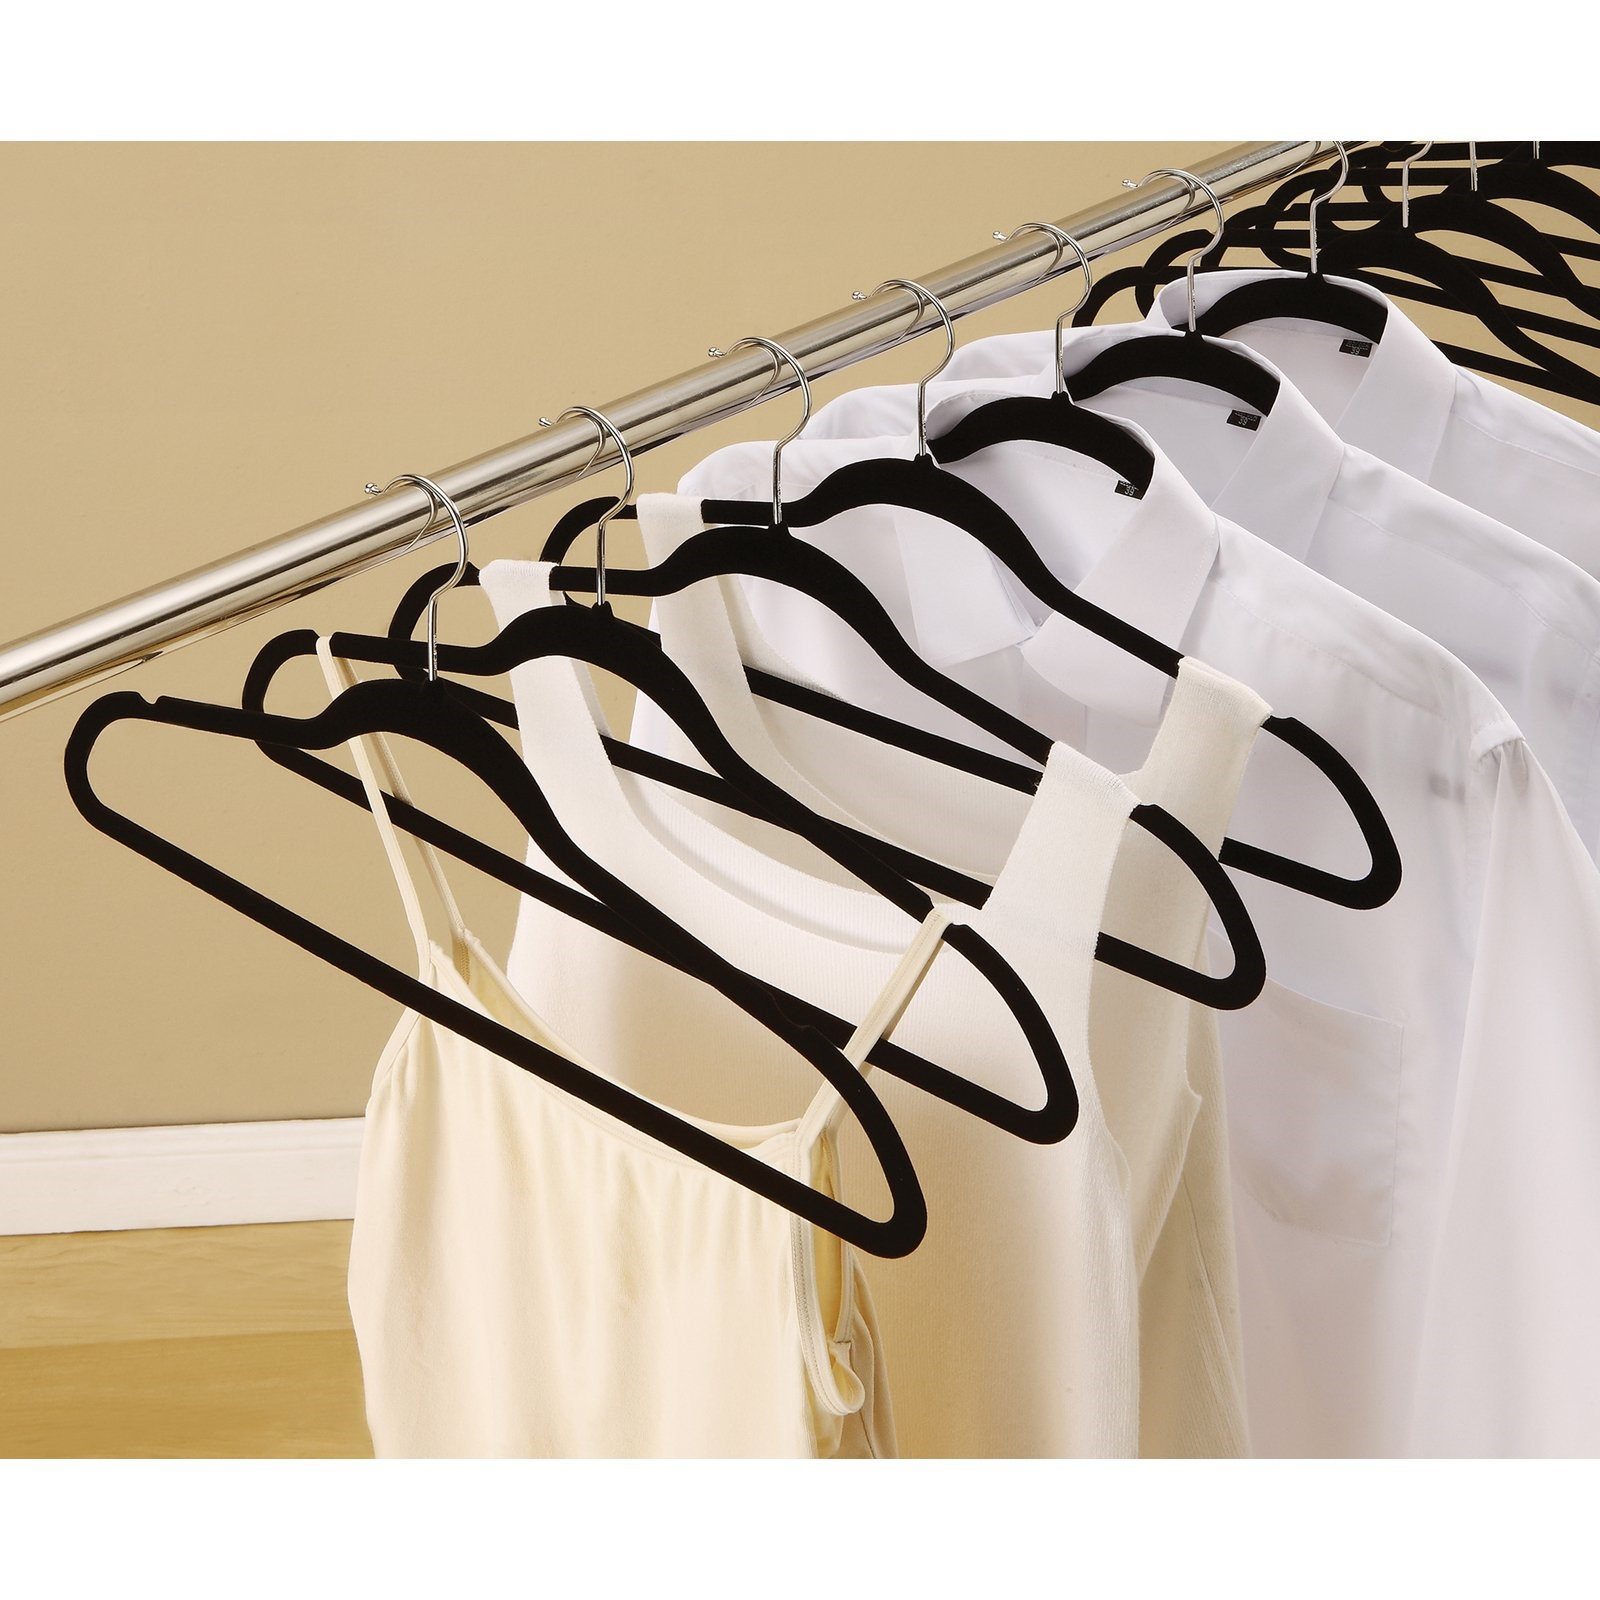 50 Pack Flock Suit Hangers (Black)